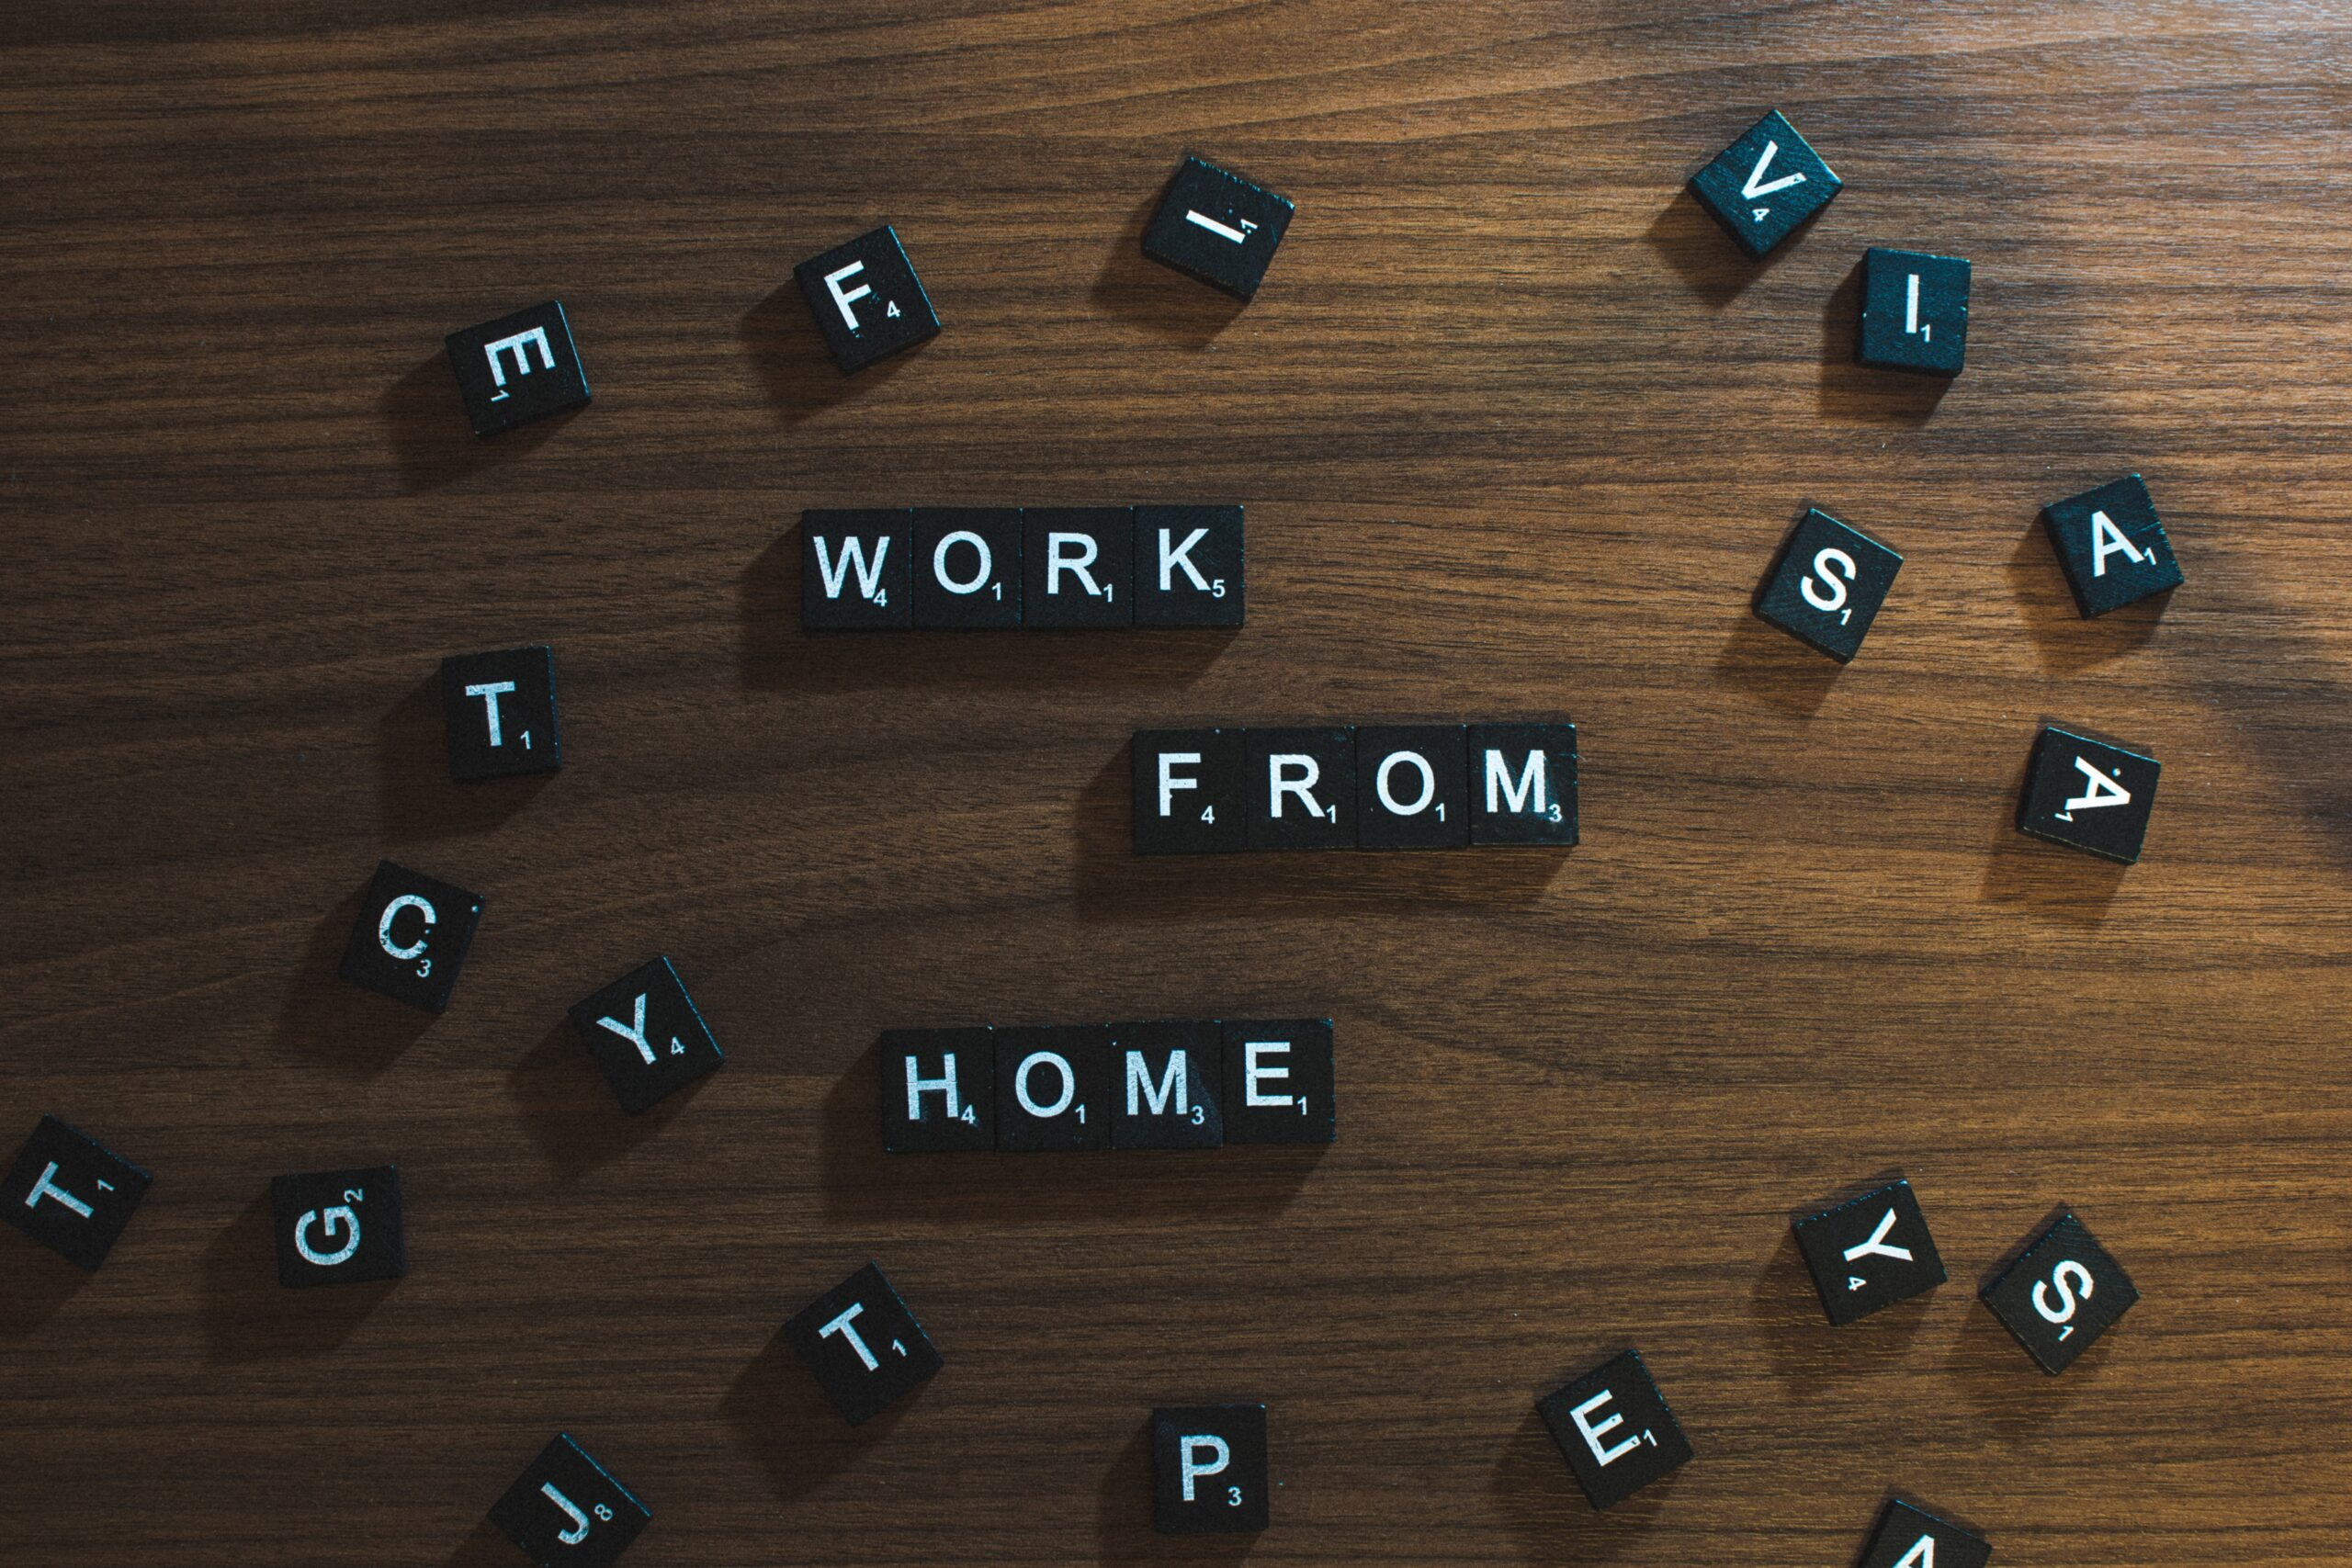 Work from home letter tiles.